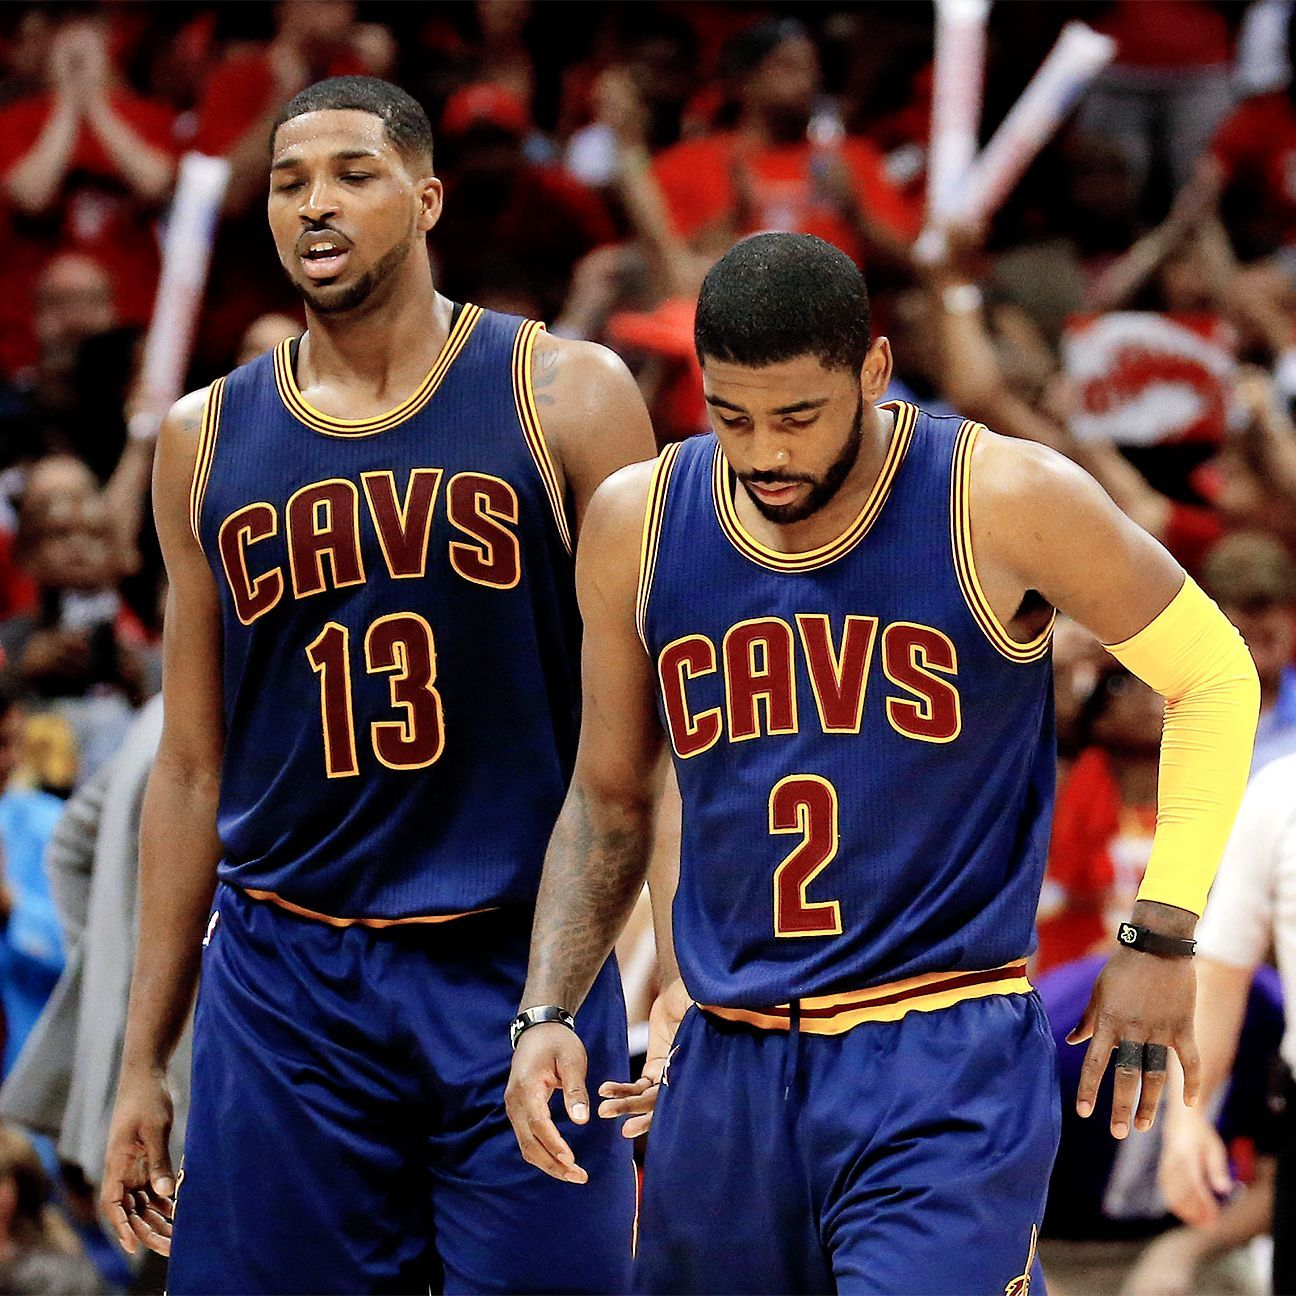 Kyrie Irving misses 2nd straight game vs. Hawks with knee tendinitis Cleveland Cavaliers  #ClevelandCavaliers